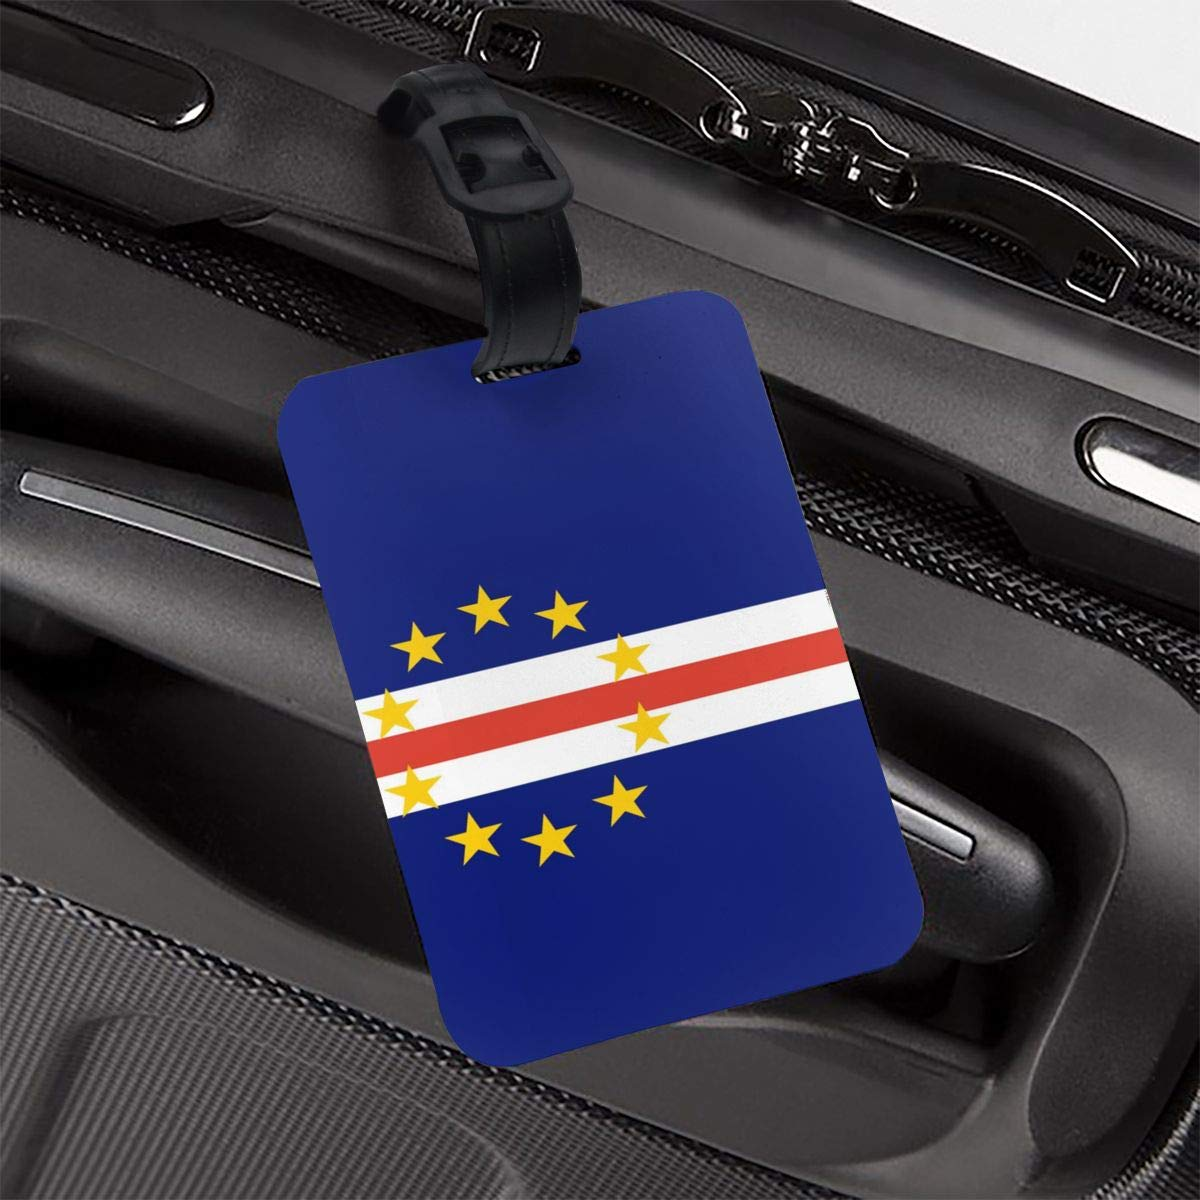 NB UUD Cape Verde Flag Travel Luggage Tag Printed Employees Card Luggage Tag Holders Travel ID Identification Labels for Baggage Suitcases Bags